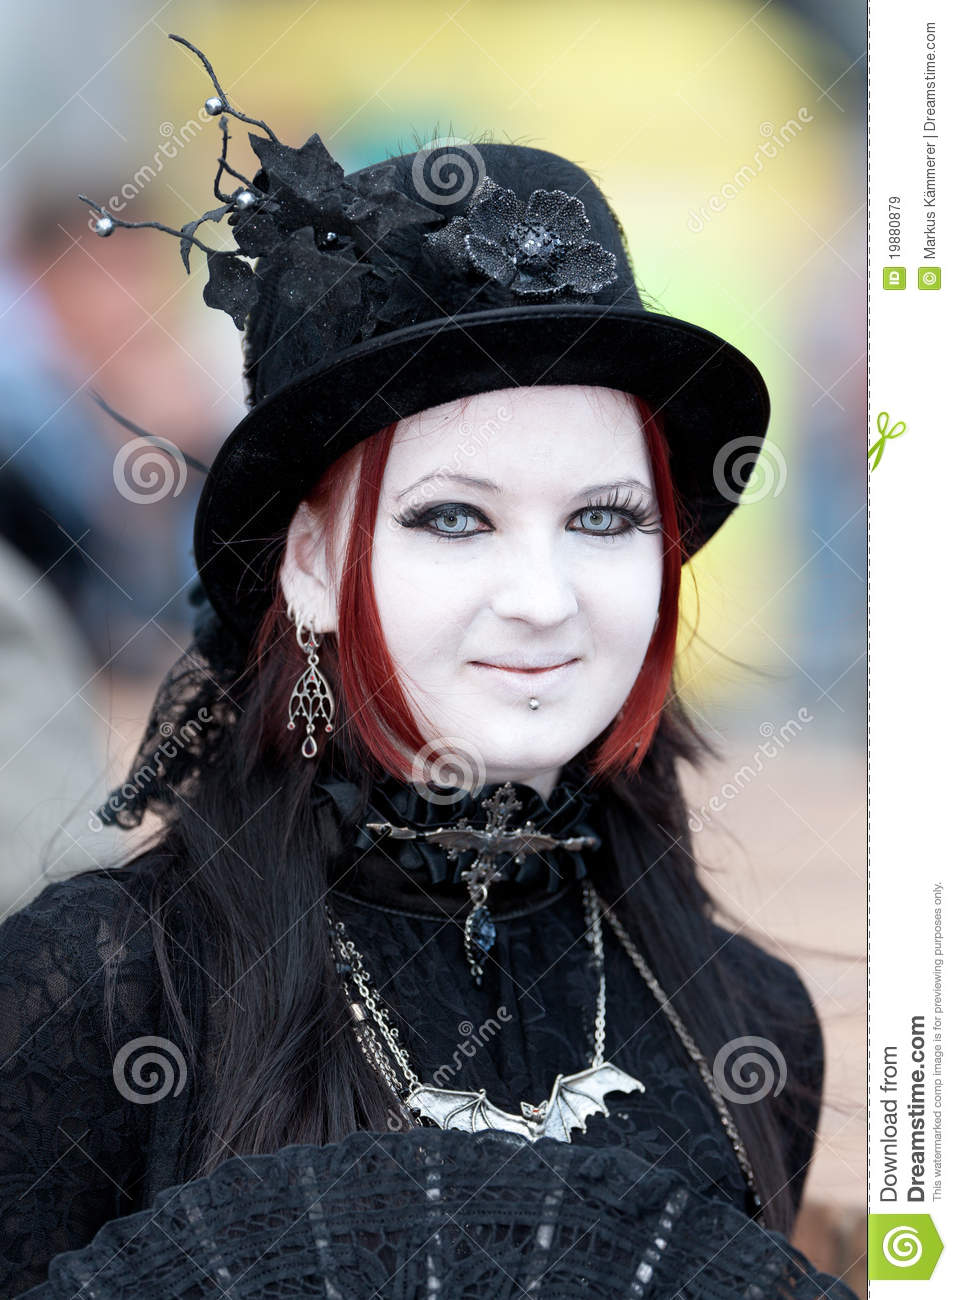 Medieval Girl At Wave Gotik Treffen Editorial Stock Image ...